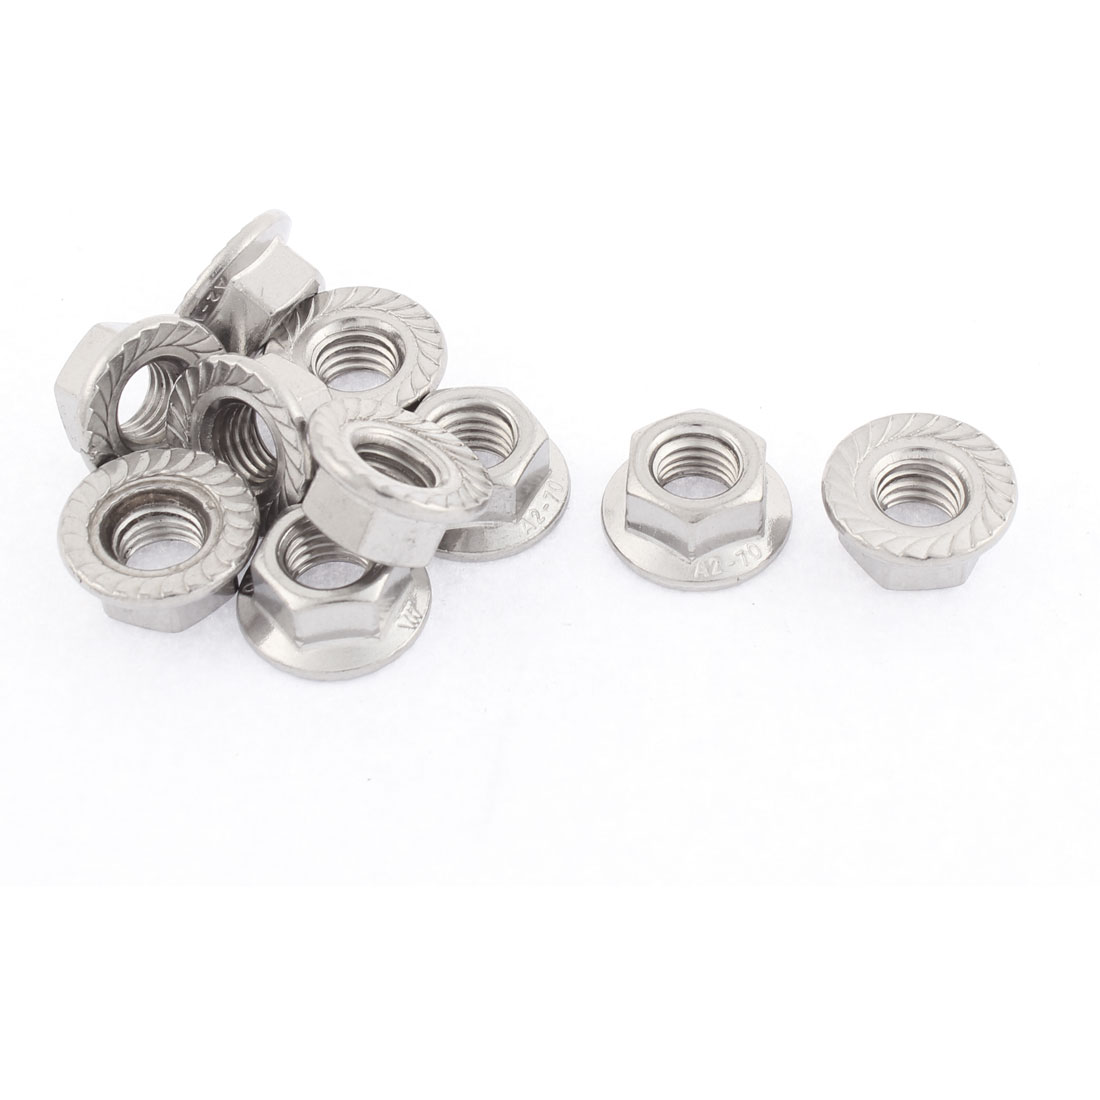 M10 Thread Dia Stainless Steel Hex Hexagon Flange Lock Nuts 10pcs